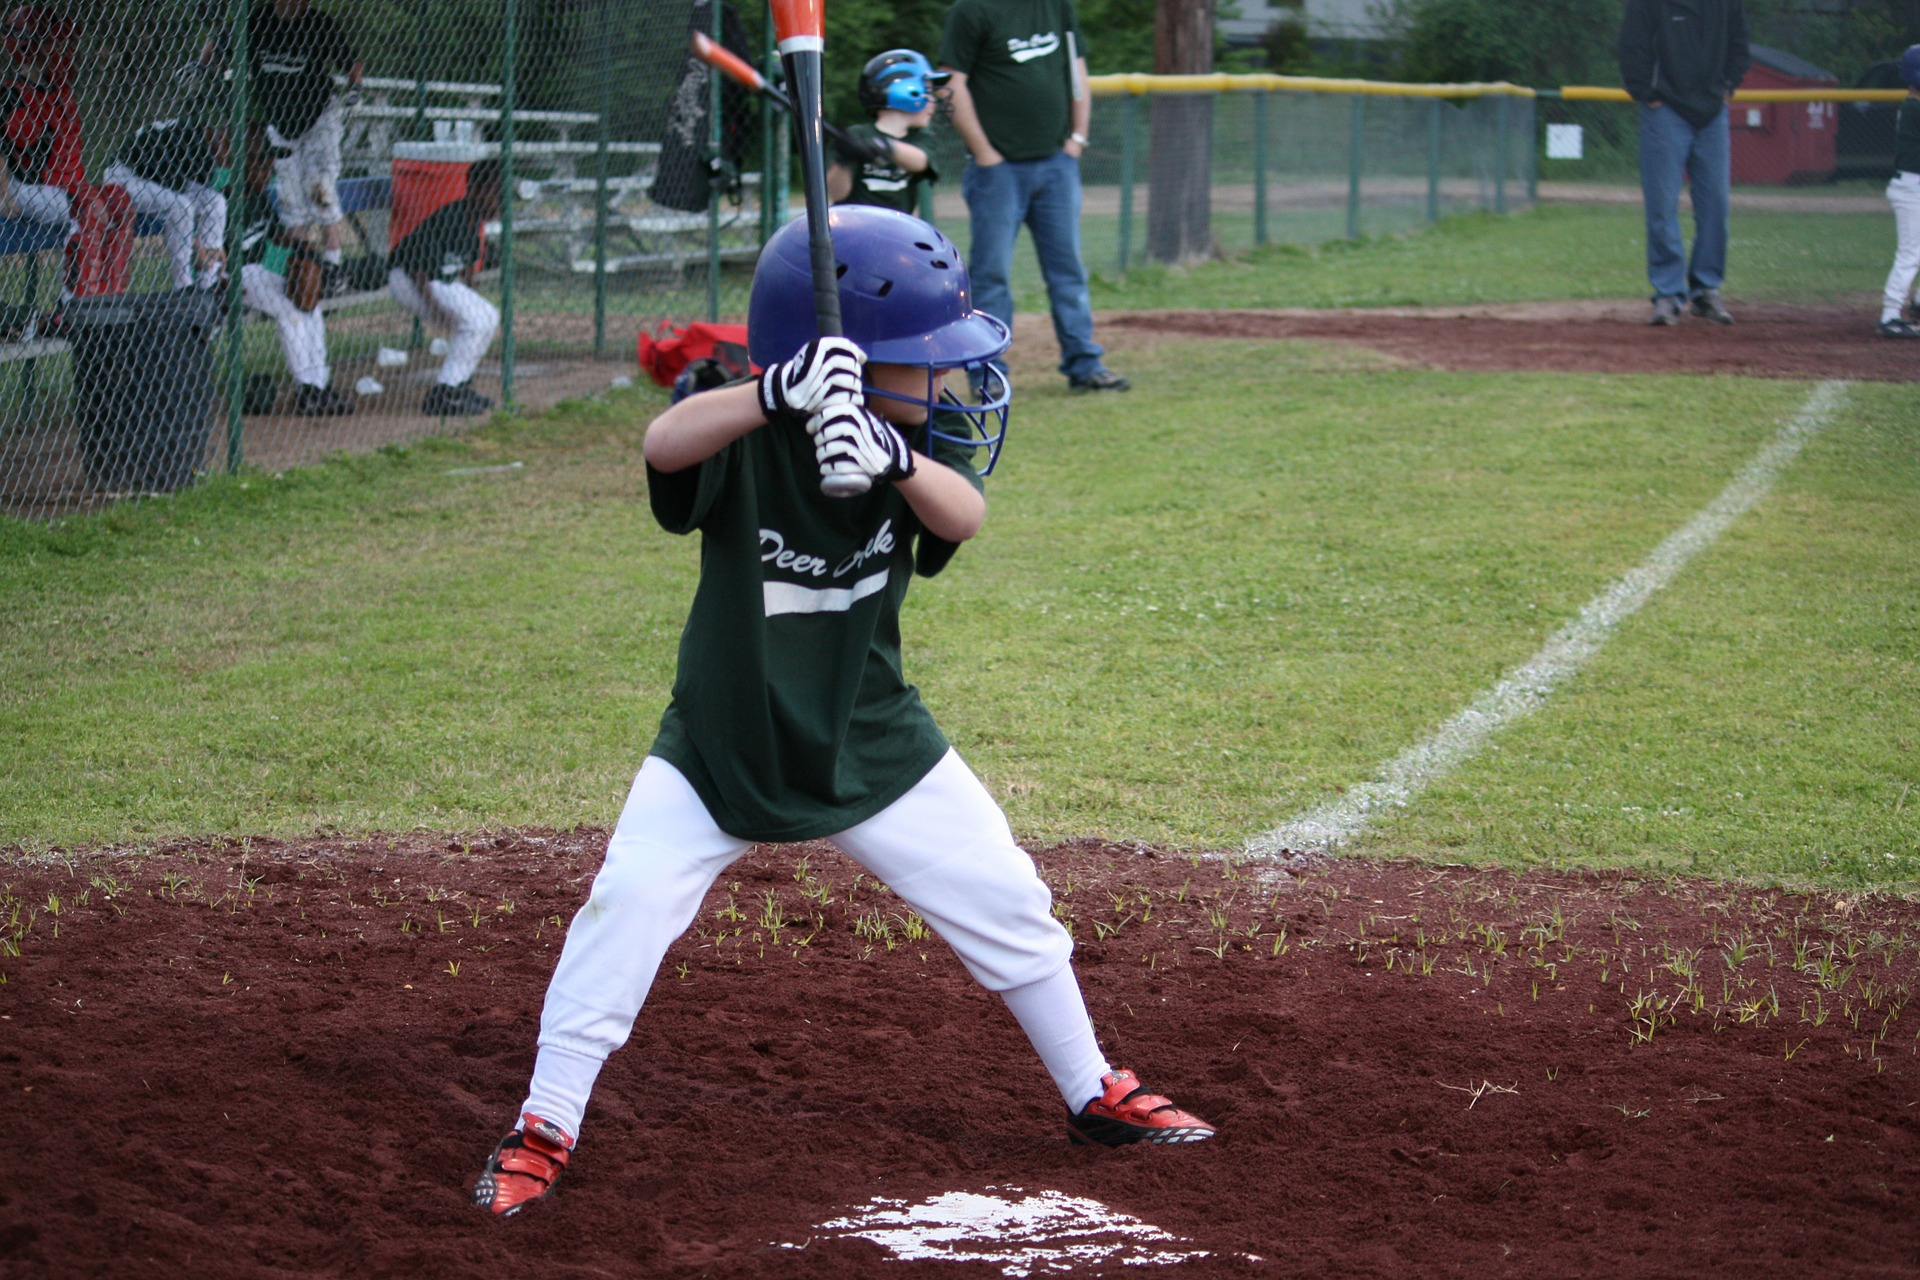 Image: a child steps up to the baseball plate ready to swing the bat